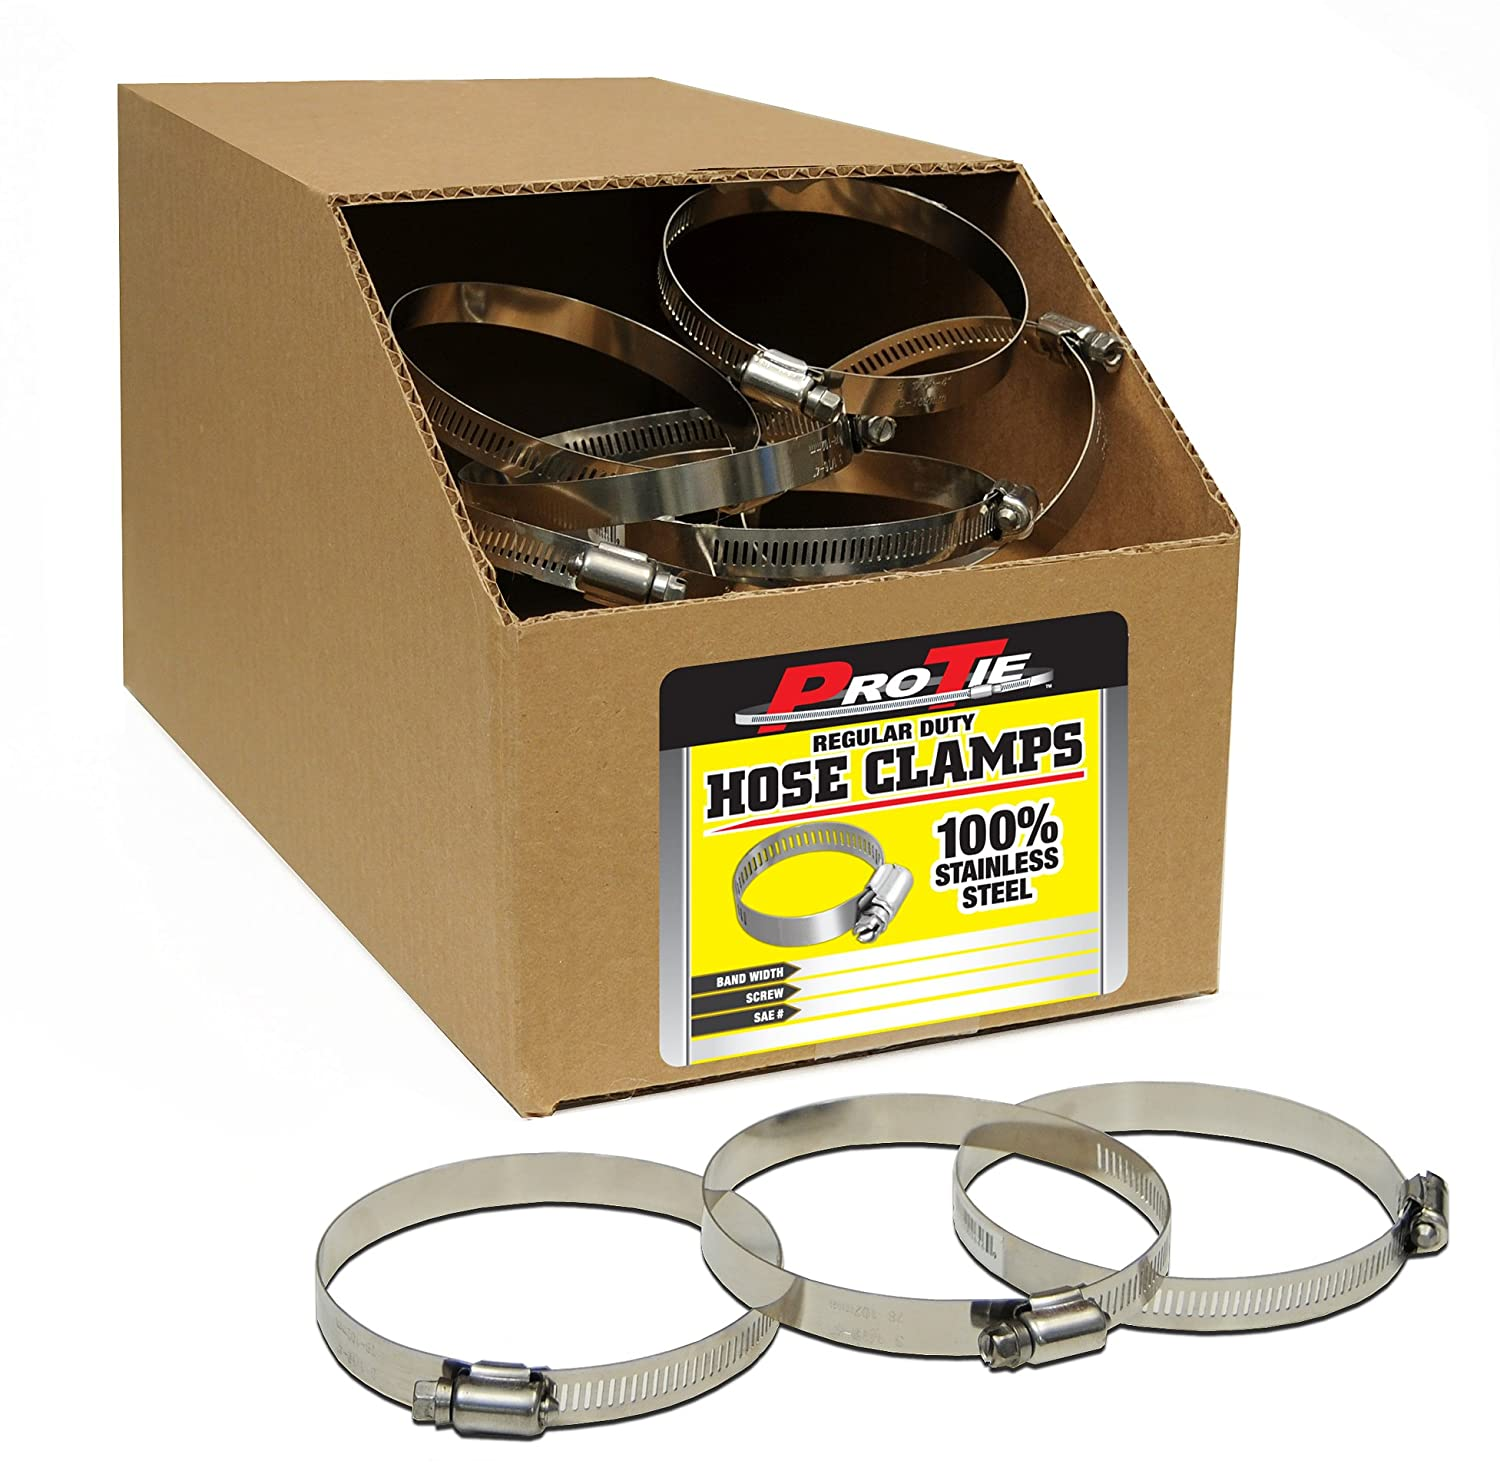 Range3-5//16-Inch-4-1//4-Inch SAE Size 60 Box of 130 Pro Tie 33835 Regular Duty All Stainless Bulk Hose Clamps